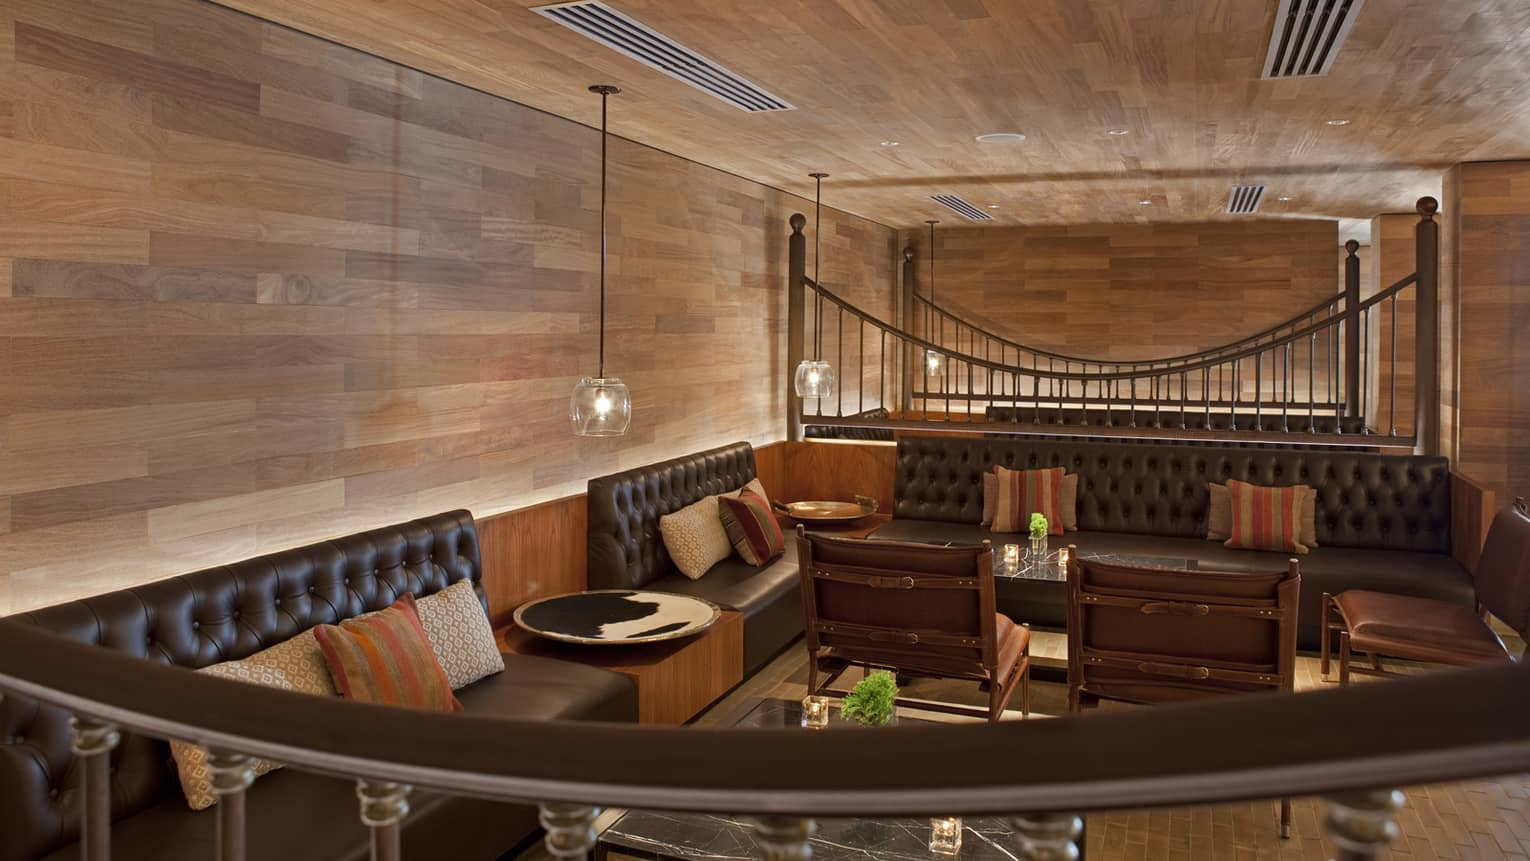 Pony Line view over curved railing to leather banquettes, lounge seating area against wood wall